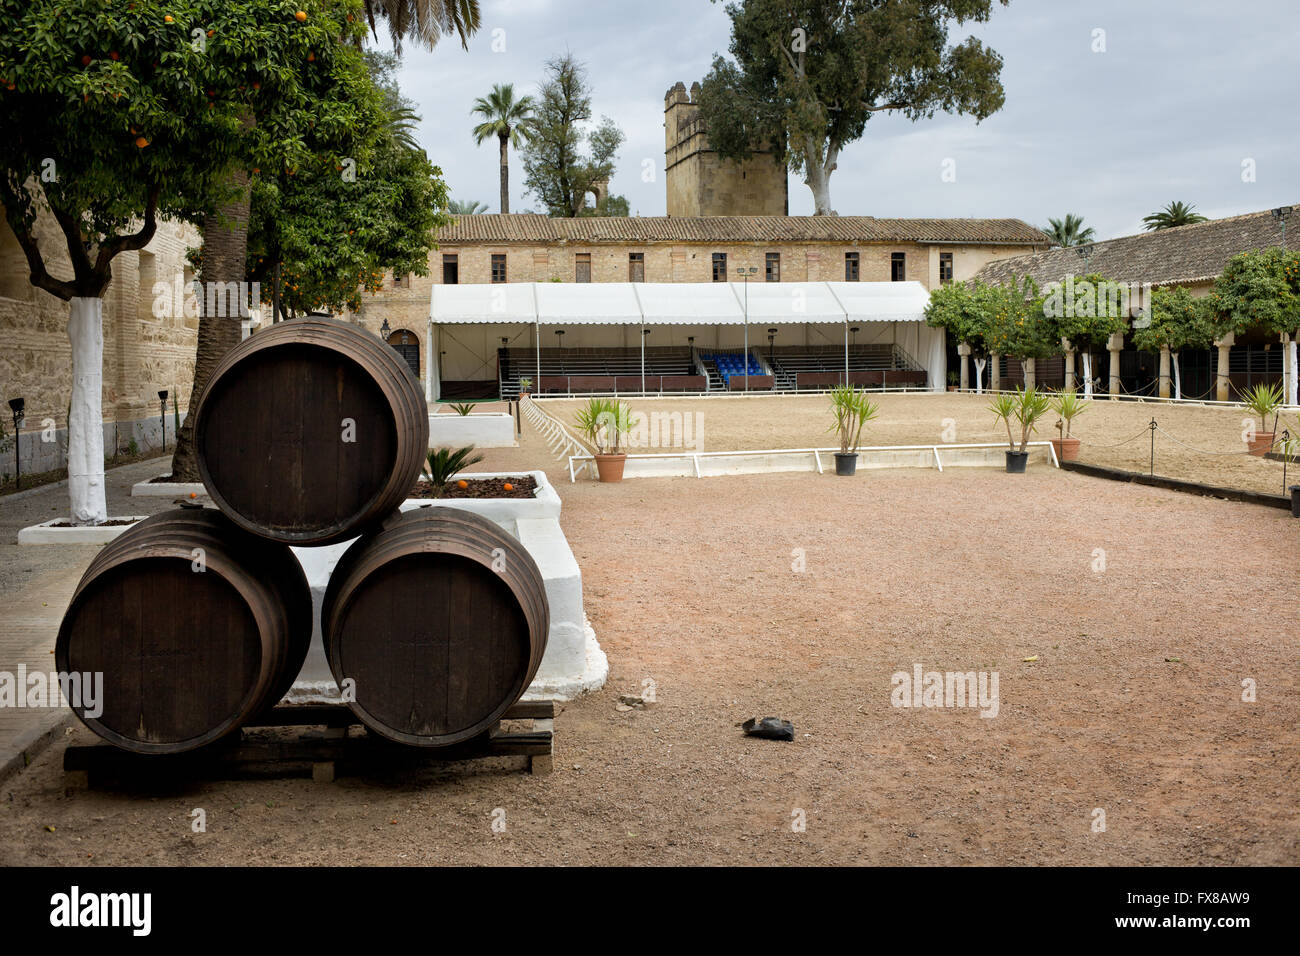 Royal Stables (Caballerizas Reales) paddock in Cordoba, Andalusia, Spain - Stock Image